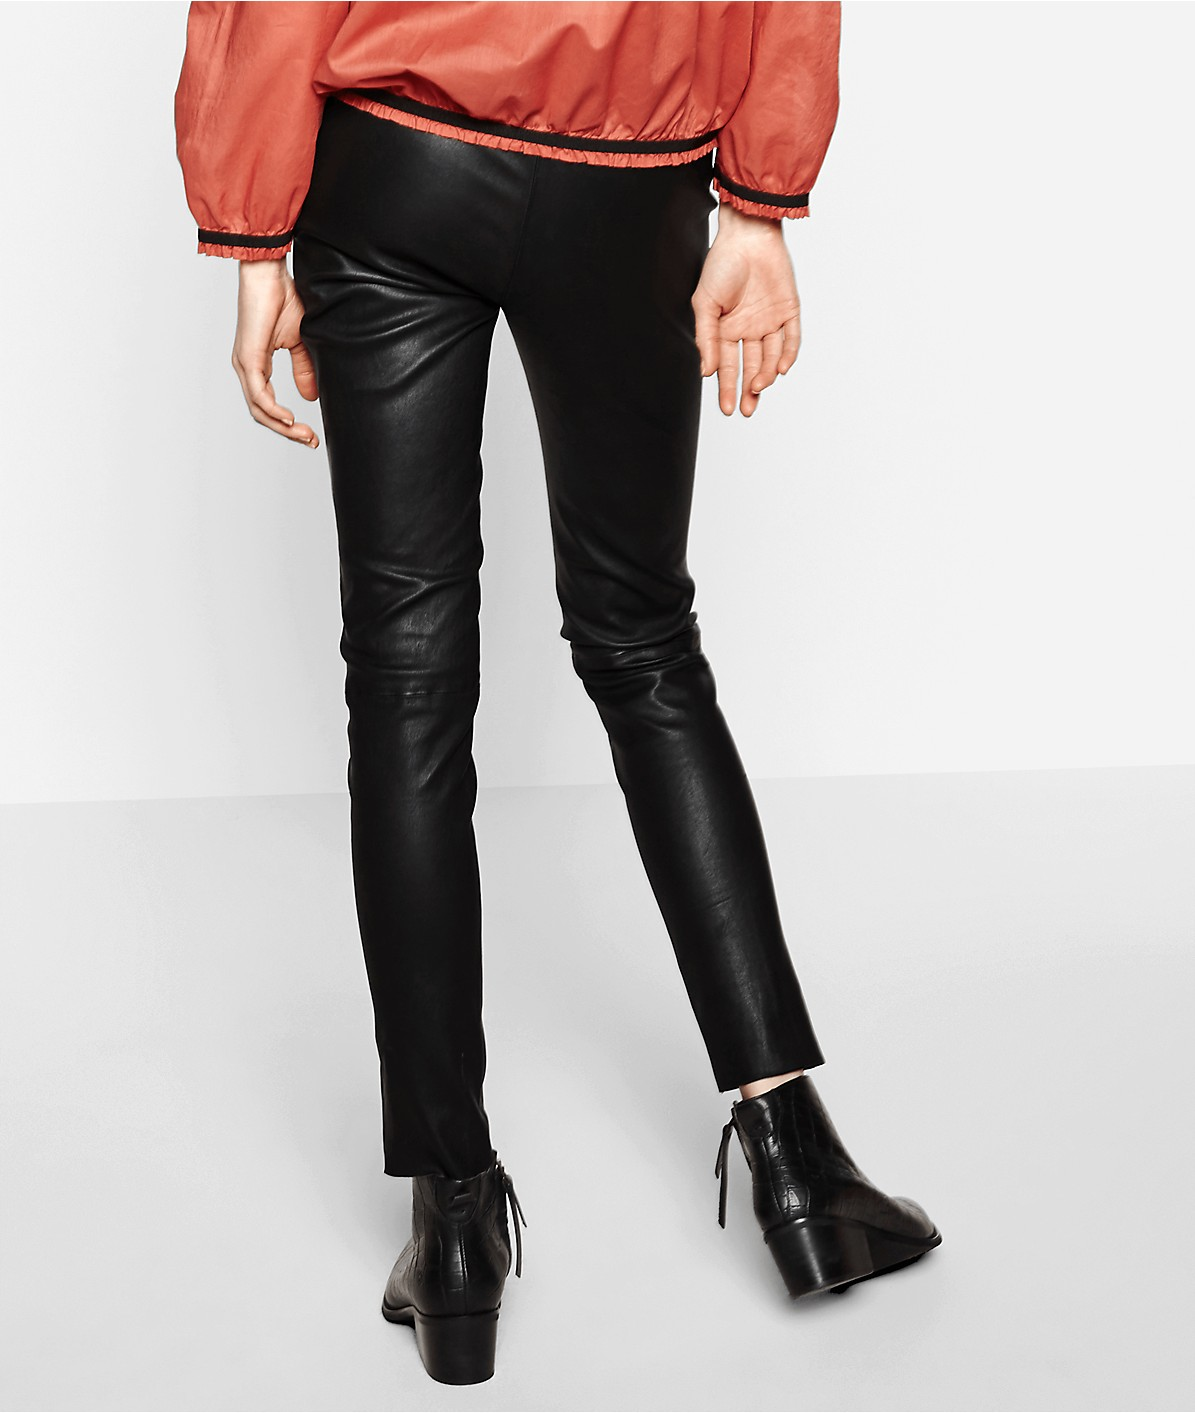 Leather leggings F2175400 from liebeskind